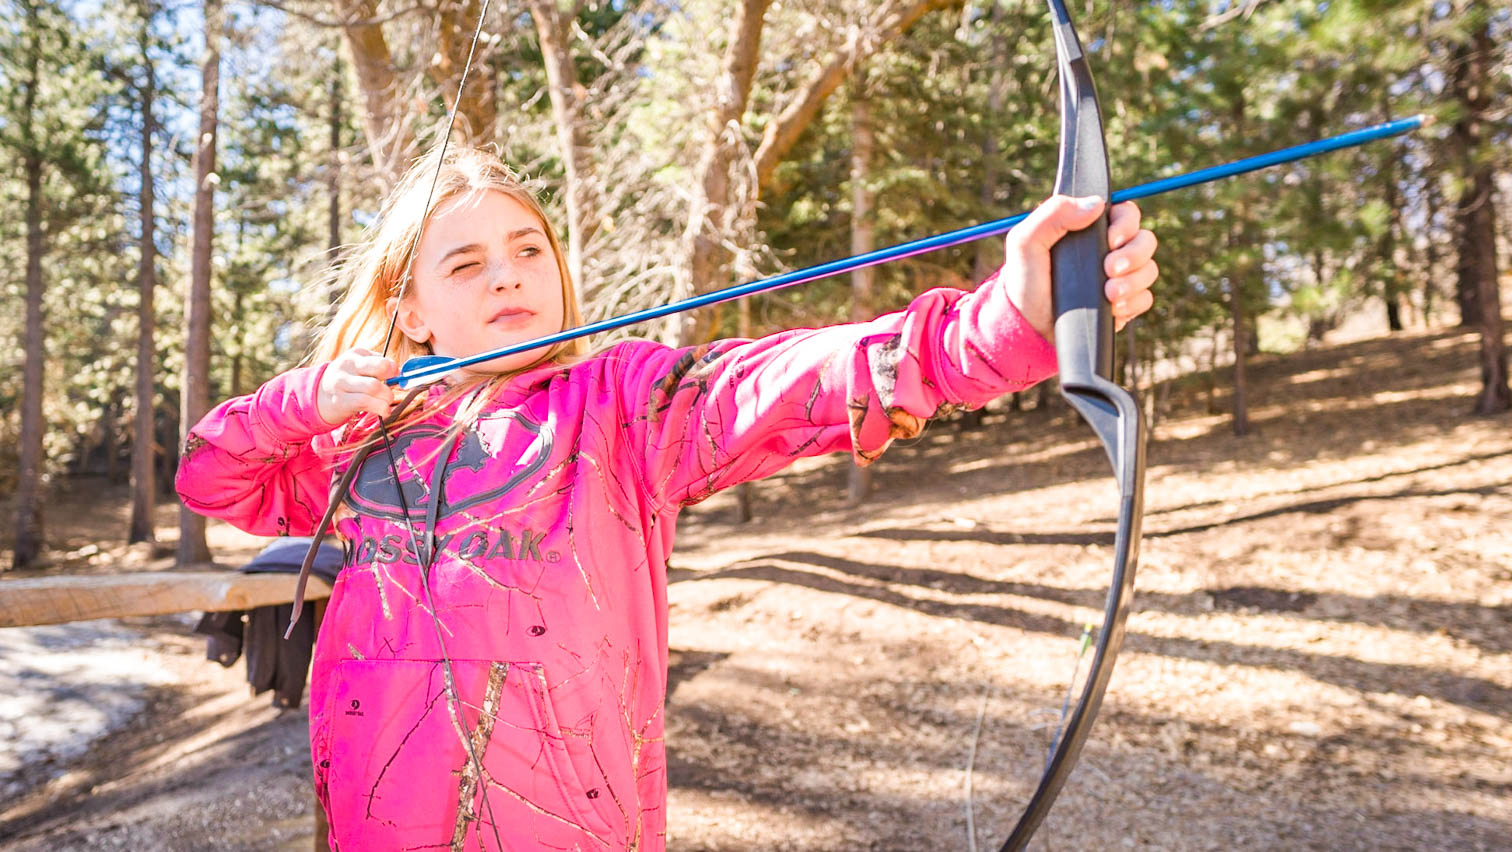 Girl in pink sweatshirt draws bow during Pali archery session